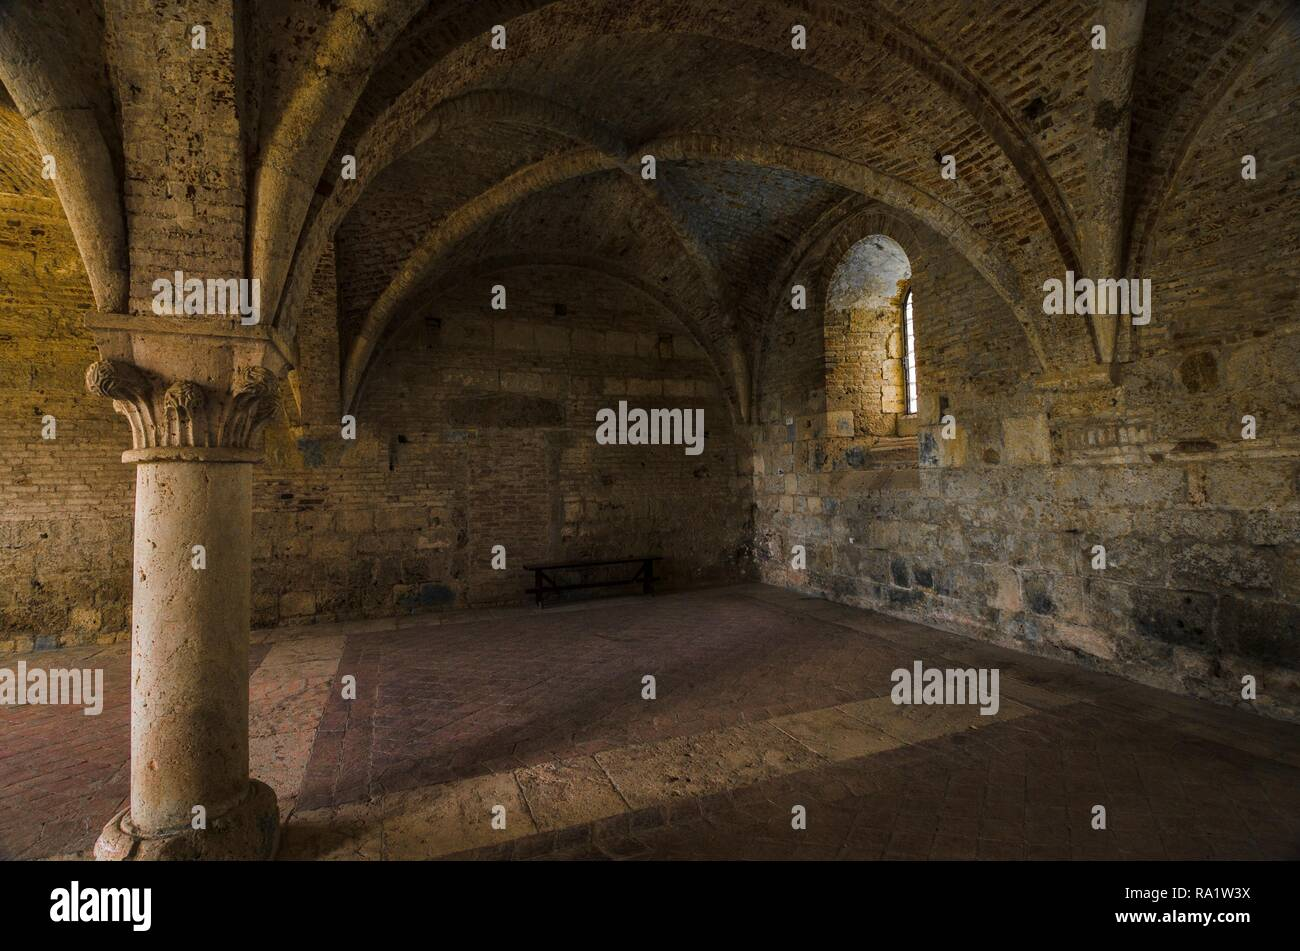 Abbey of San Galgano seen from the inside, - Stock Image